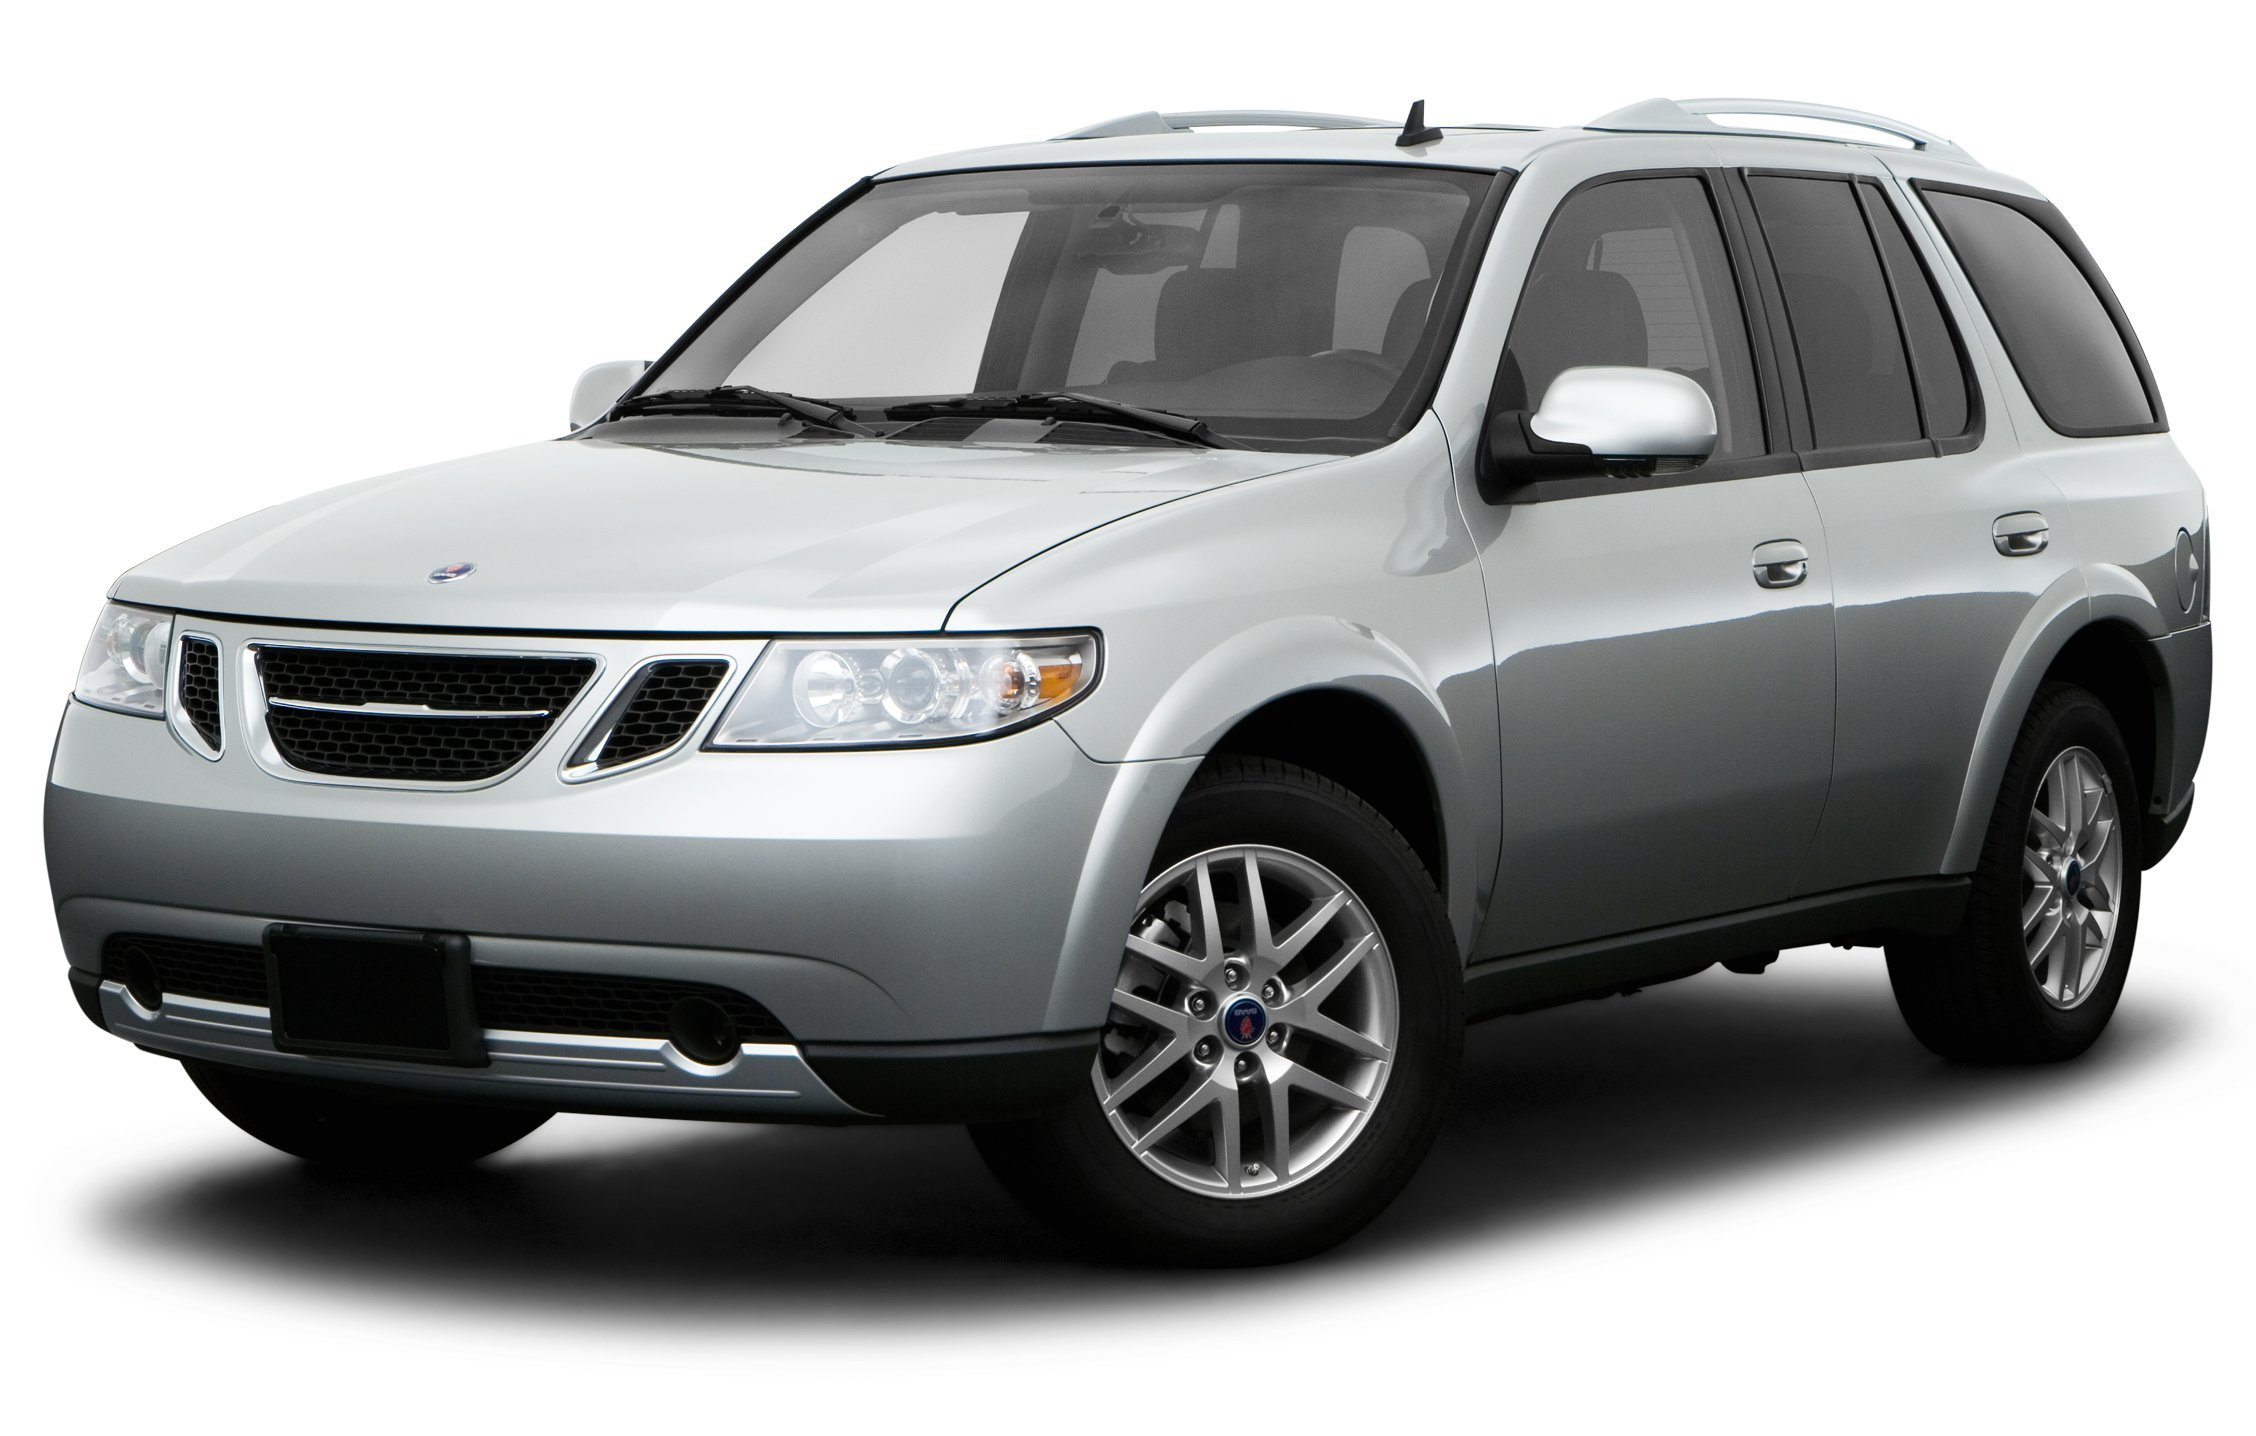 2008 Saab 9-7x 4.2i, All Wheel Drive 4-Door ...